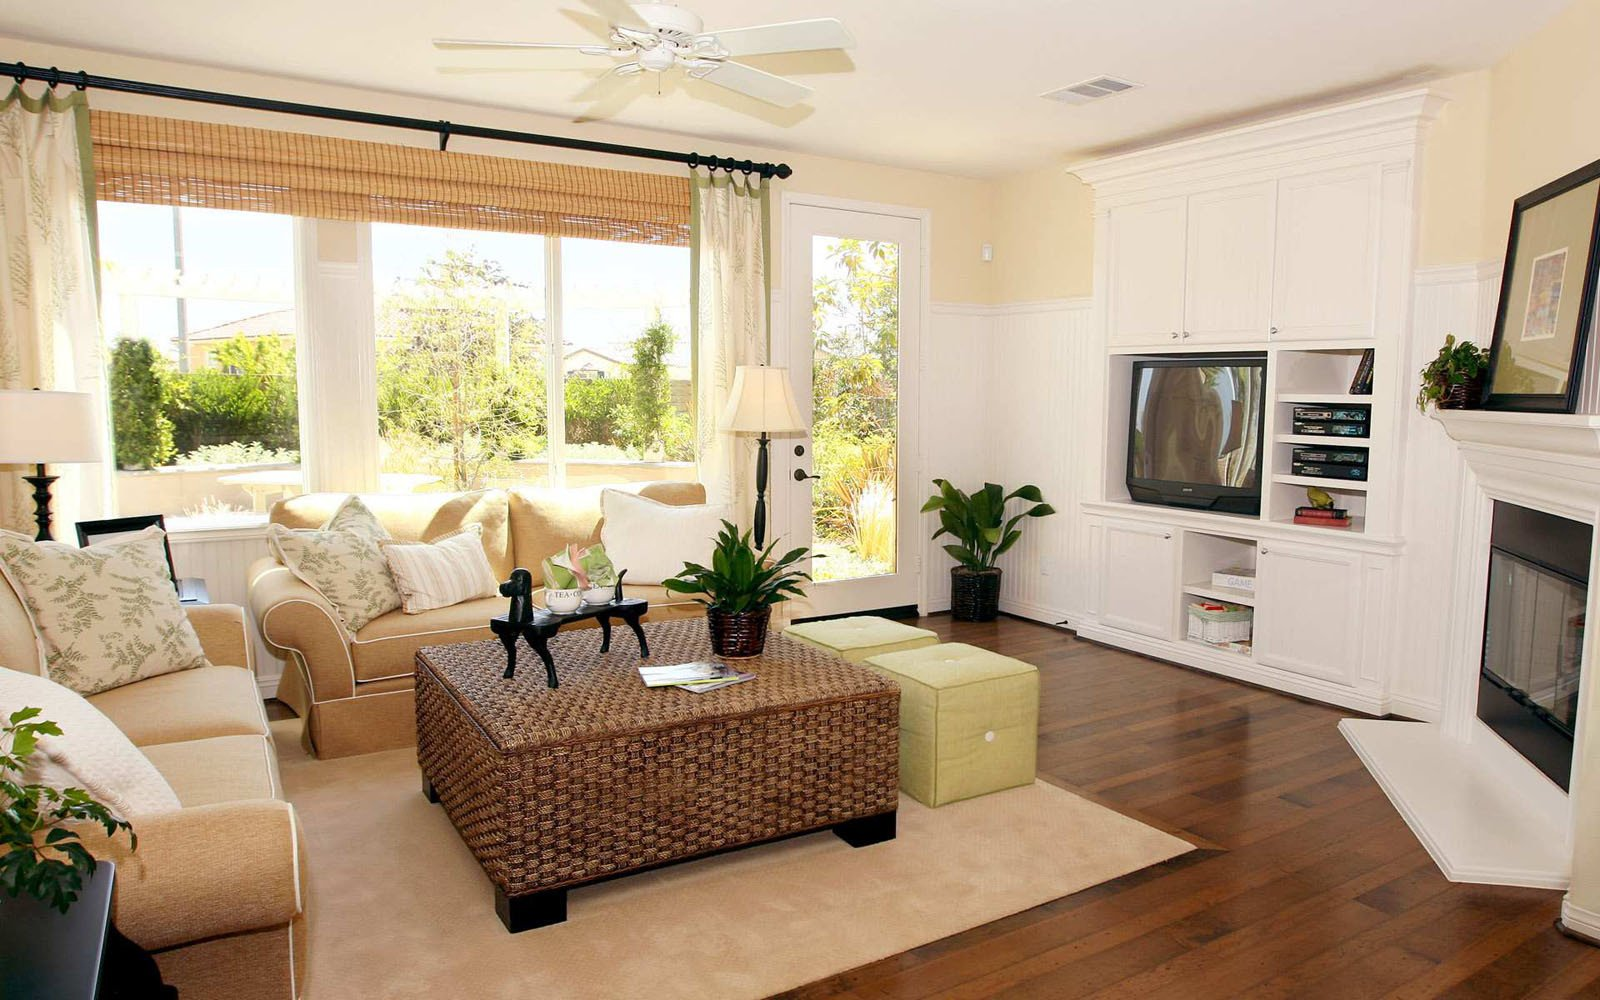 Small Rectangle Living Room Ideas Best Of Rectangular Room Design Small Living Layout with Tv How to Decorate Fresh Rectangle Layouts